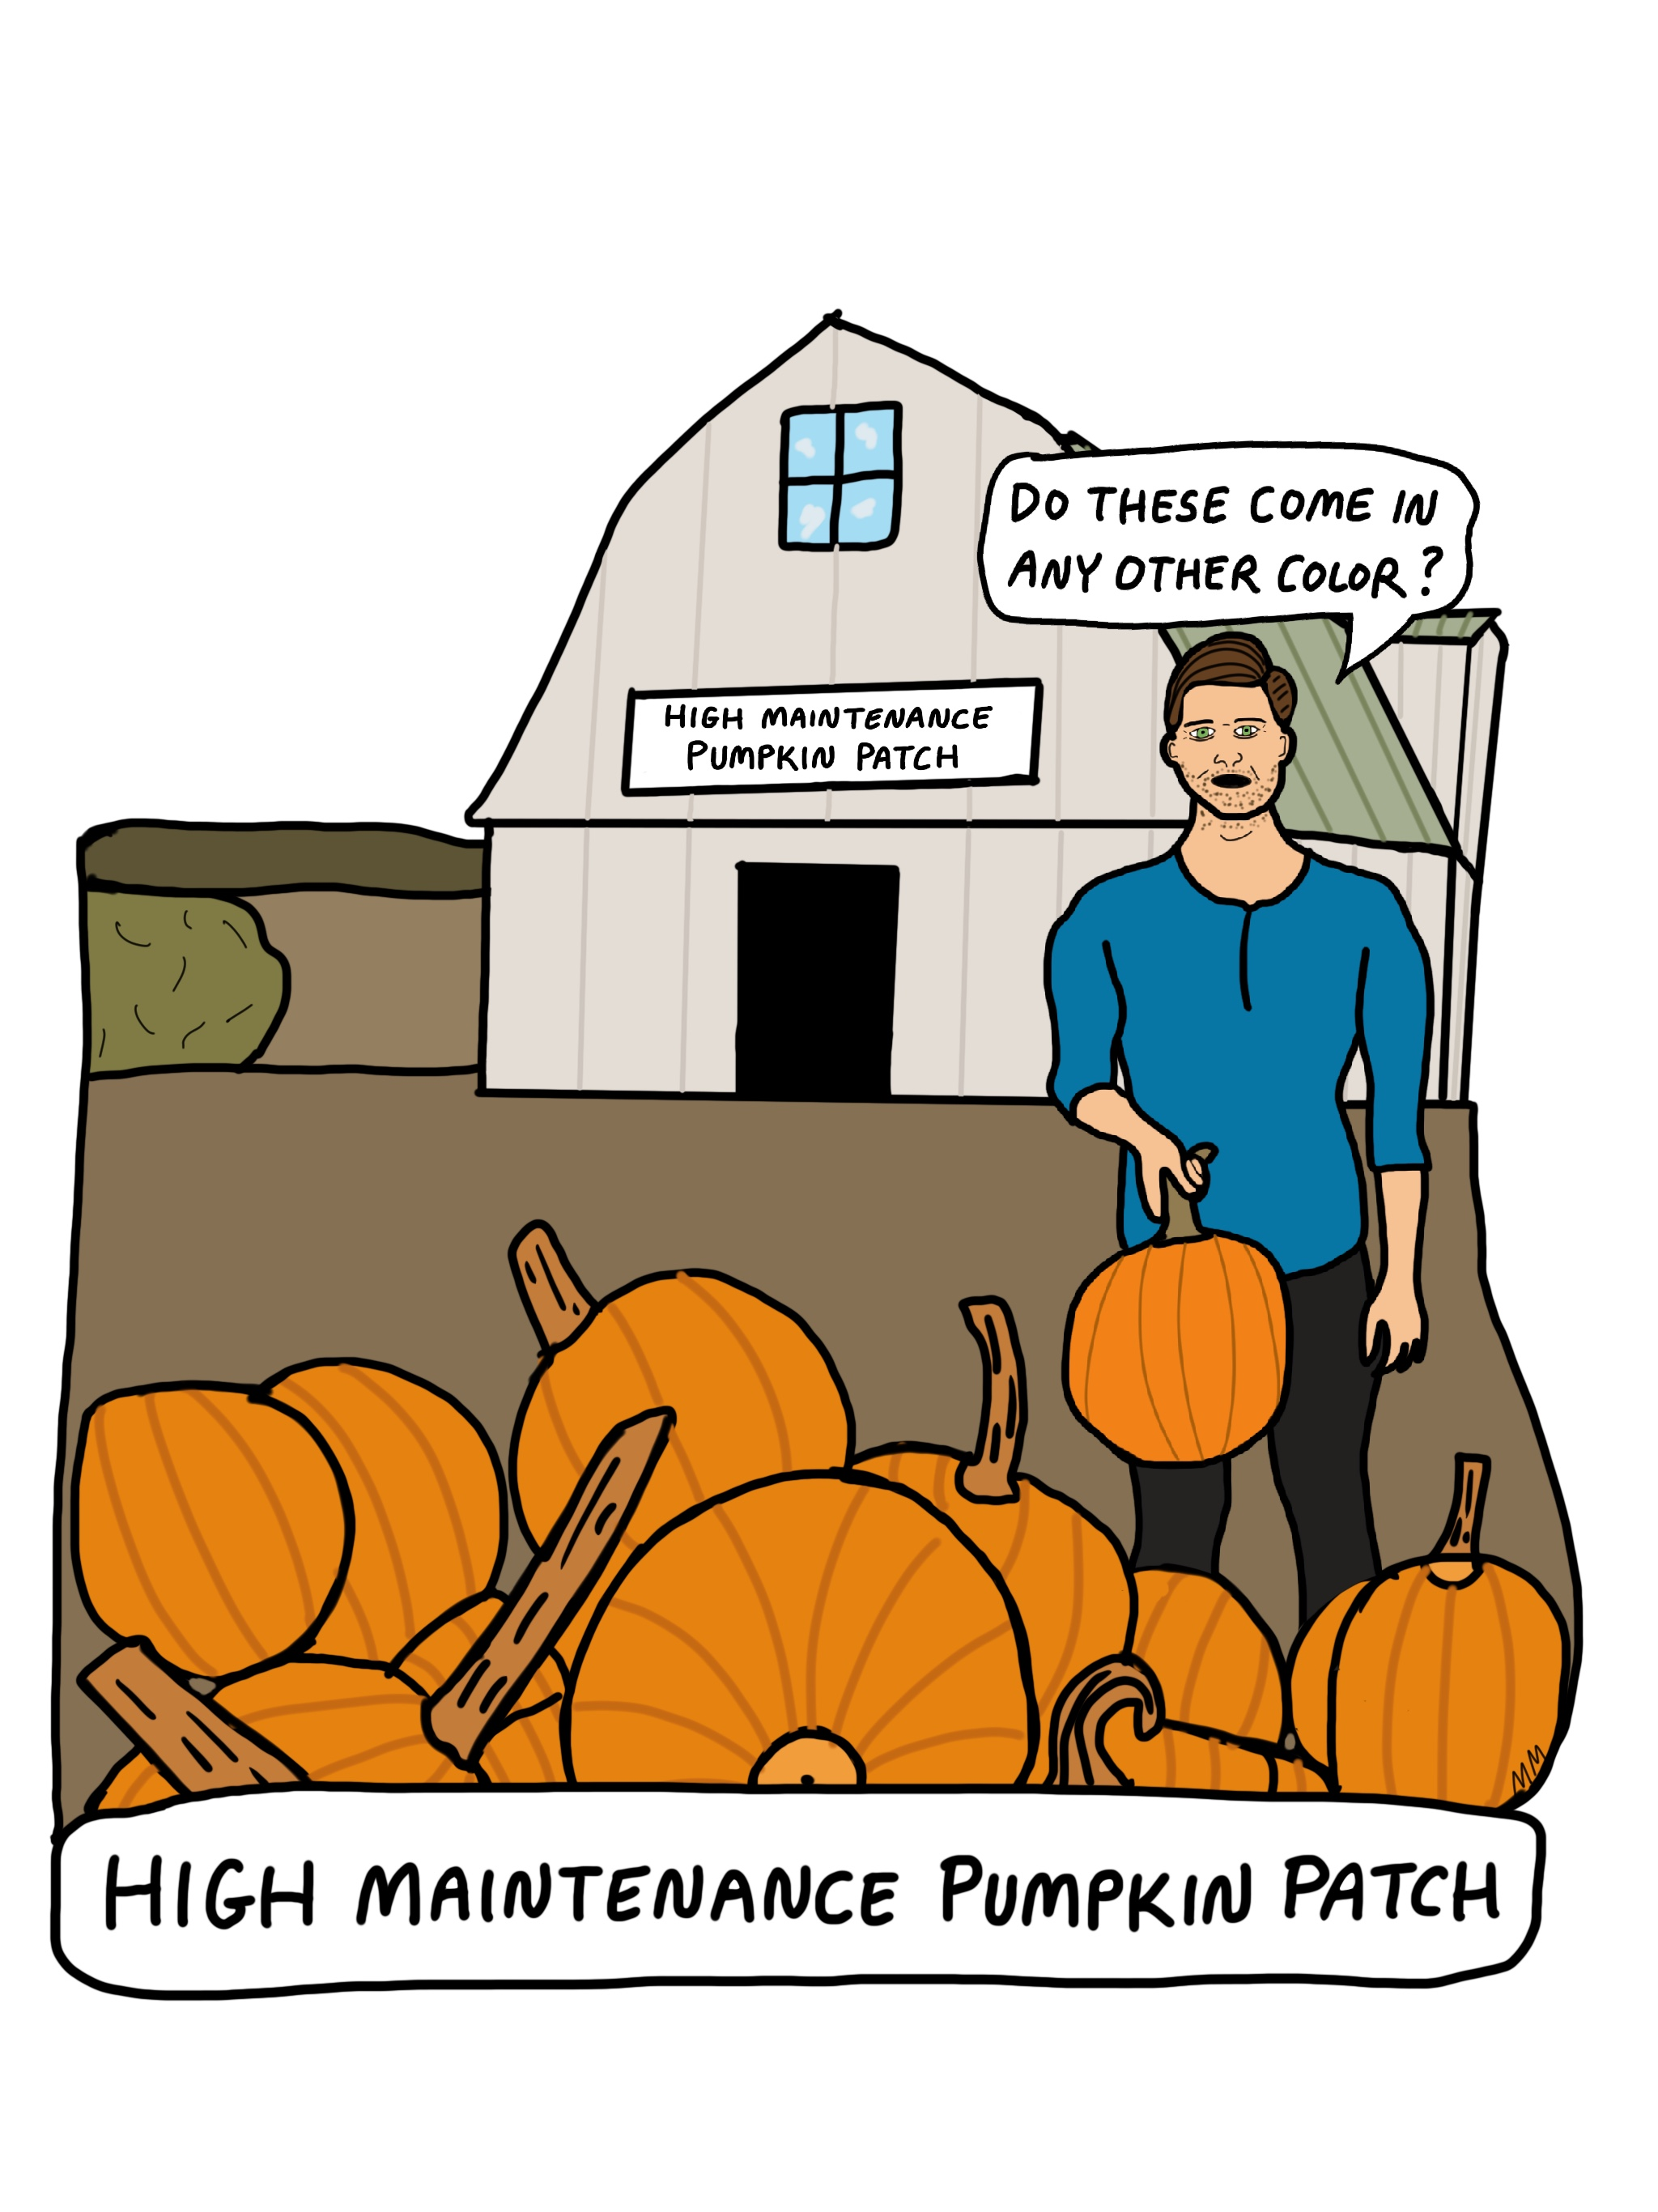 High Maintenance Pumpkin Patch